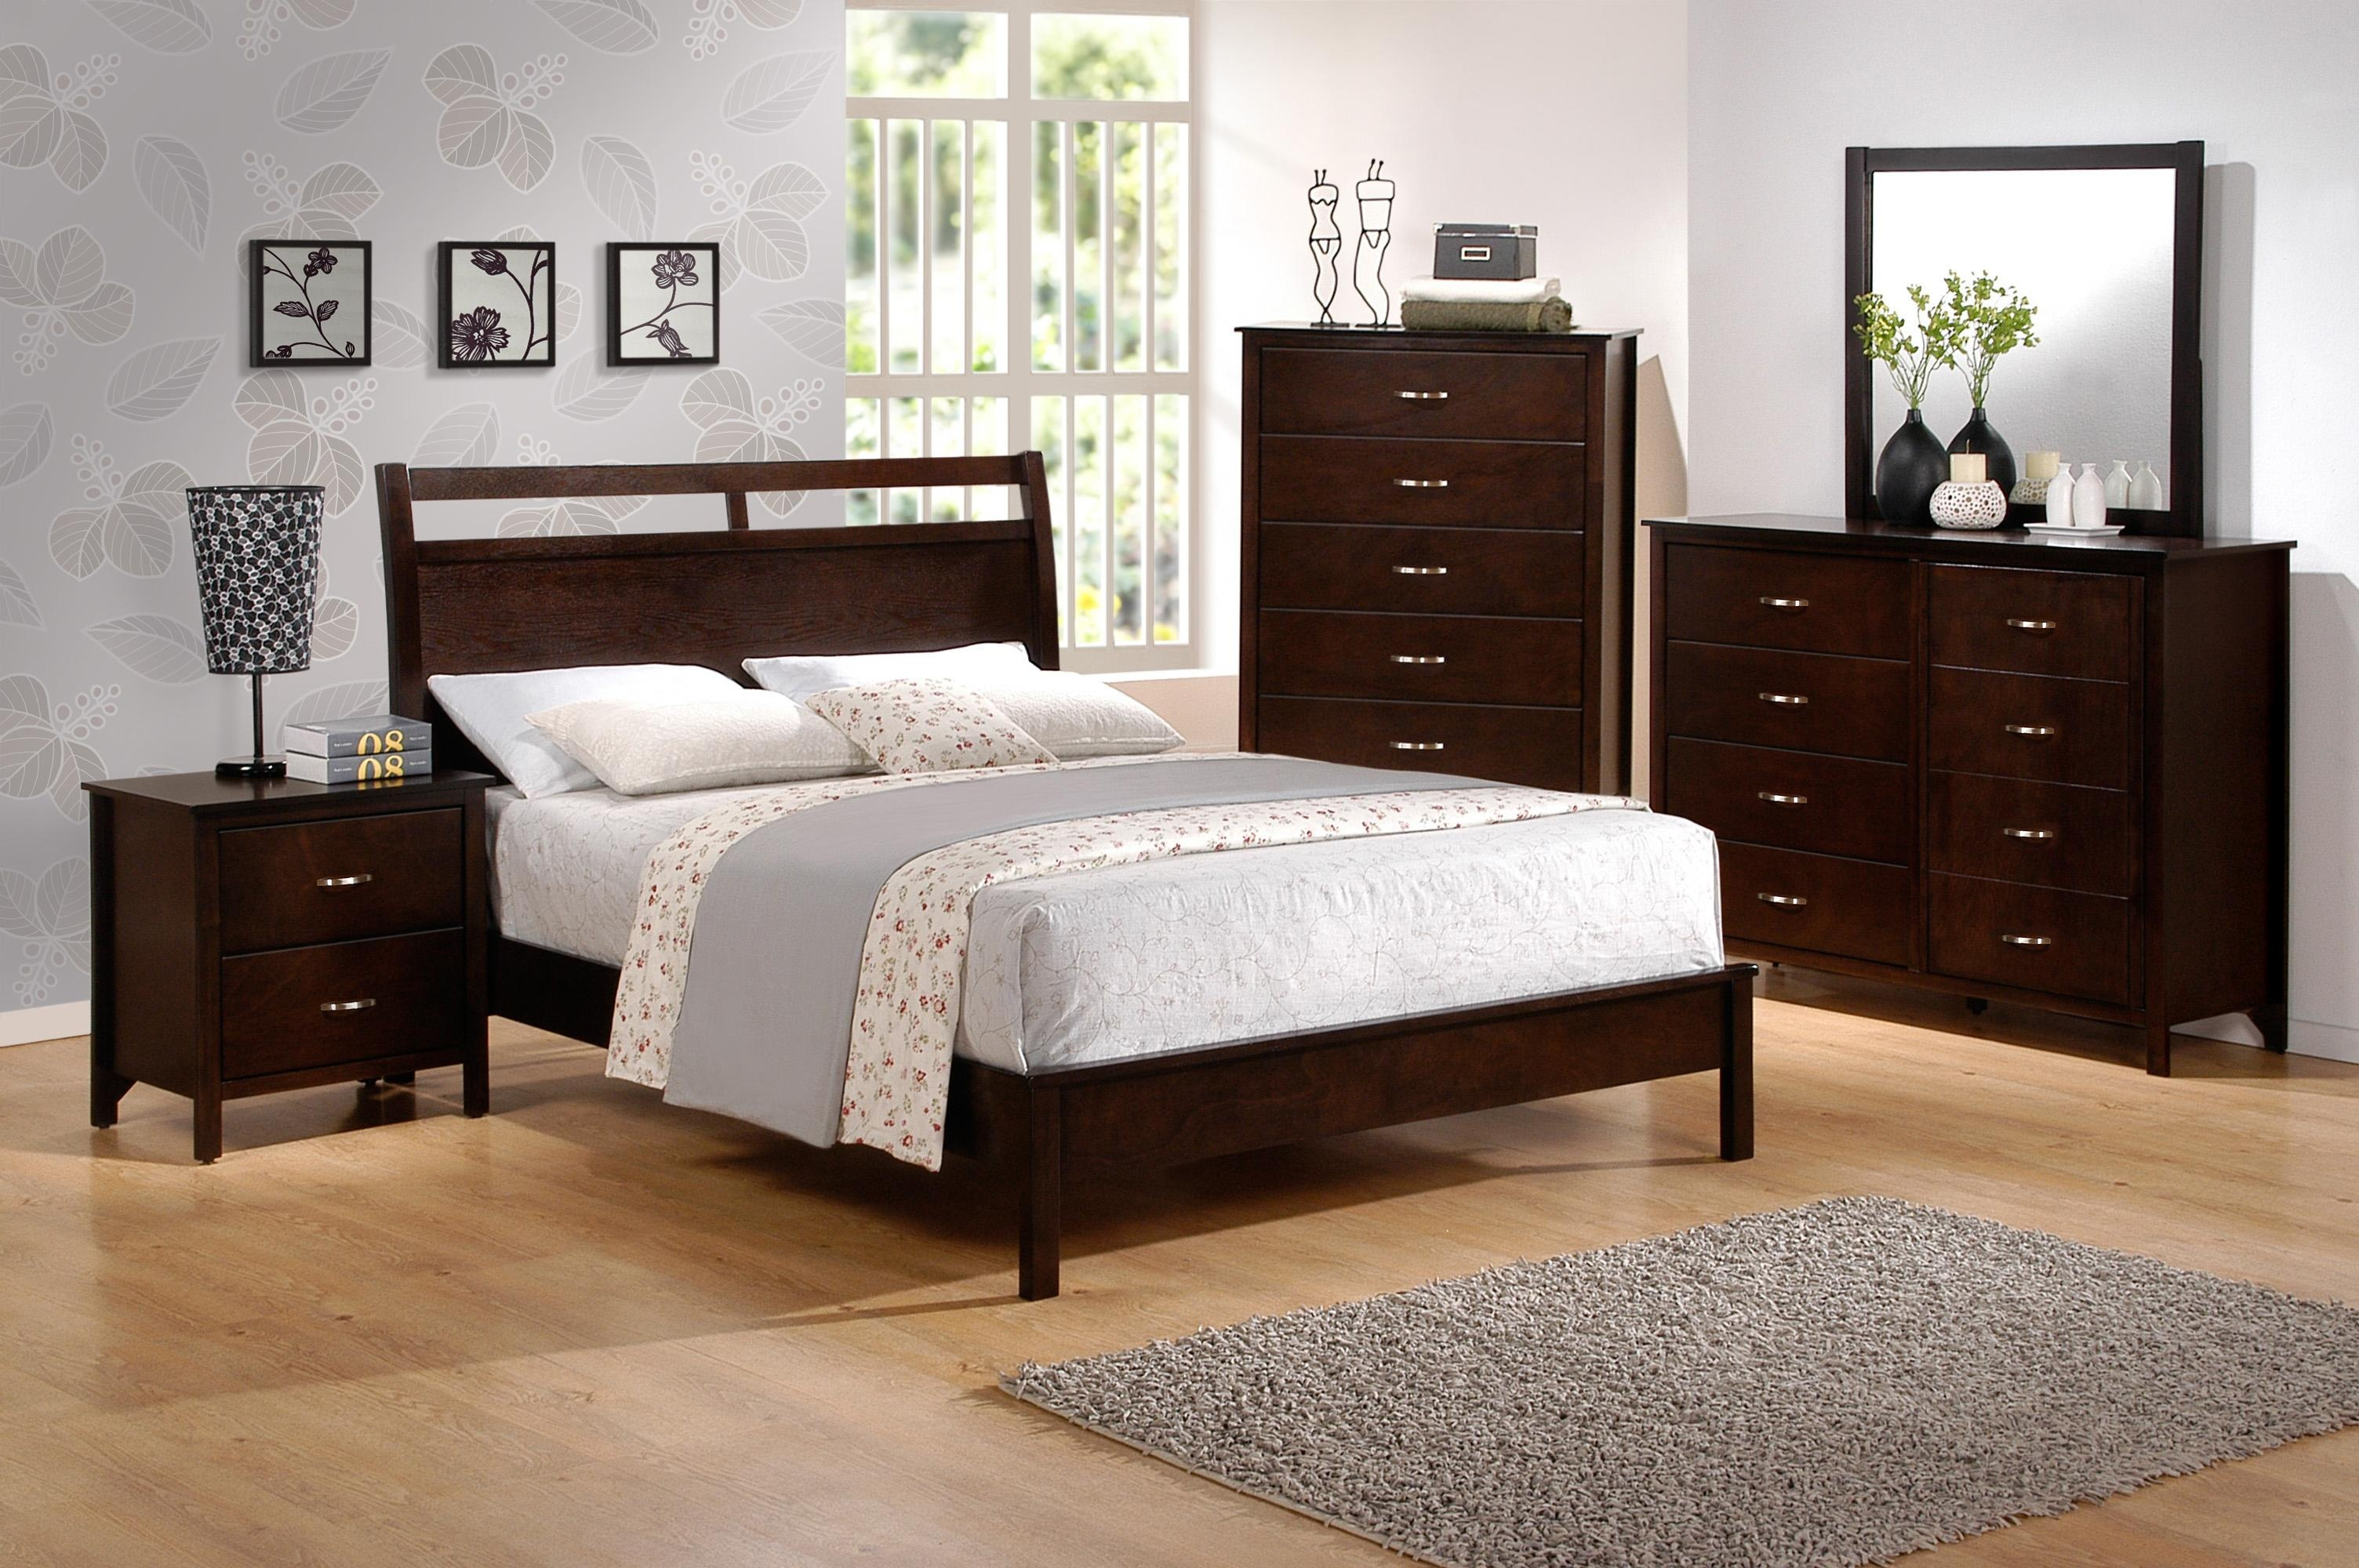 furniture clearance center - suites